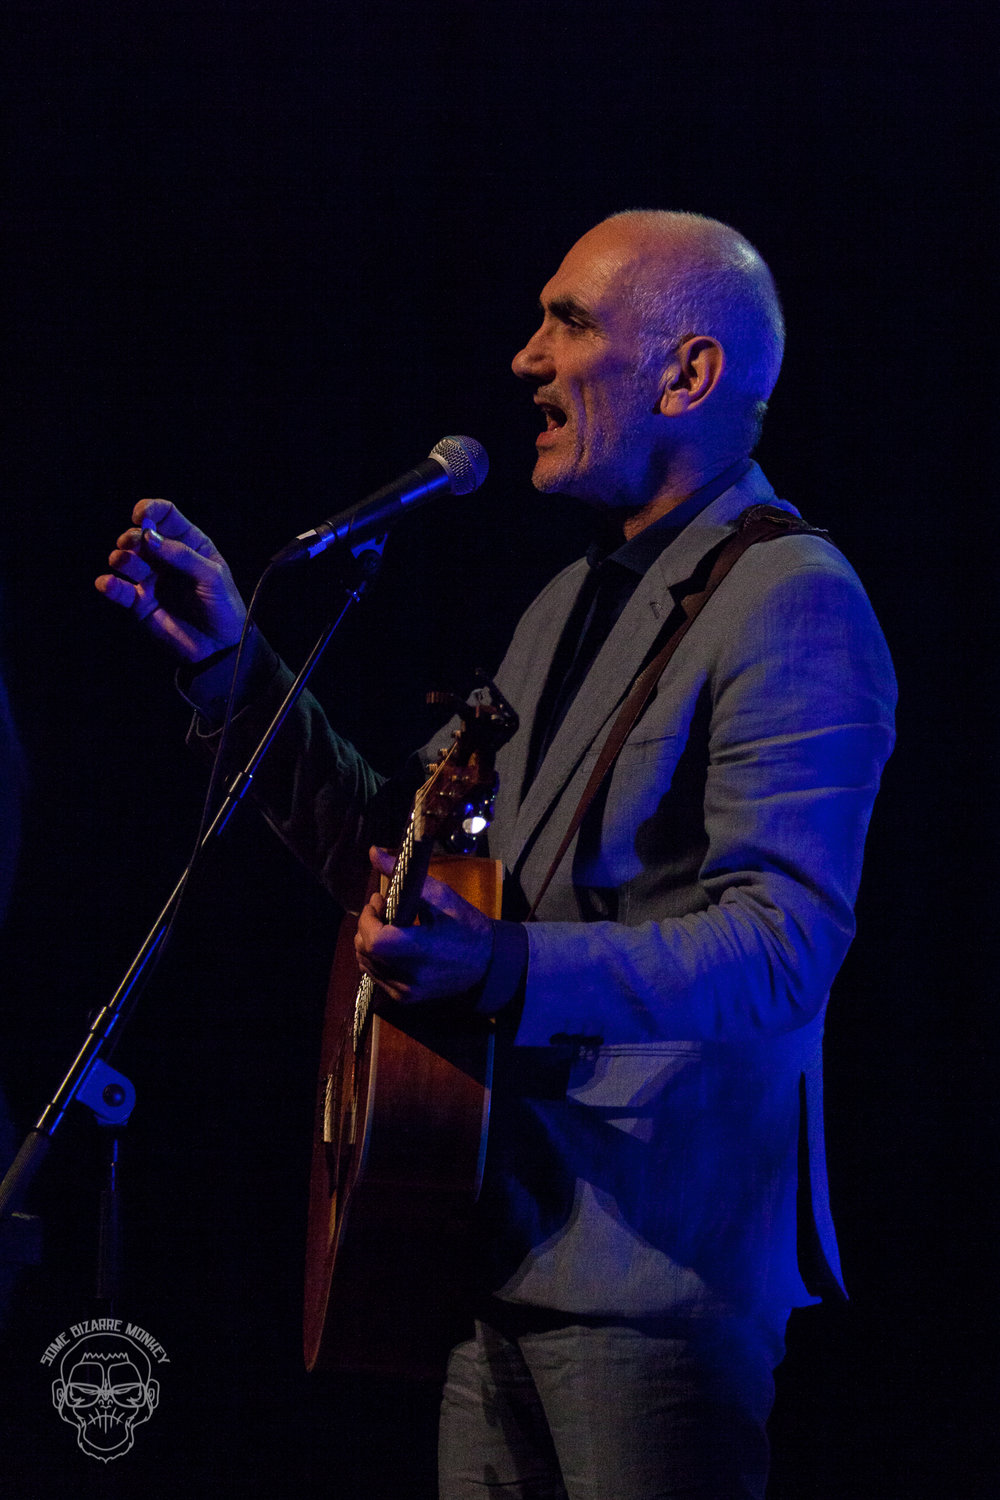 PaulKelly_Civic-1586.jpg